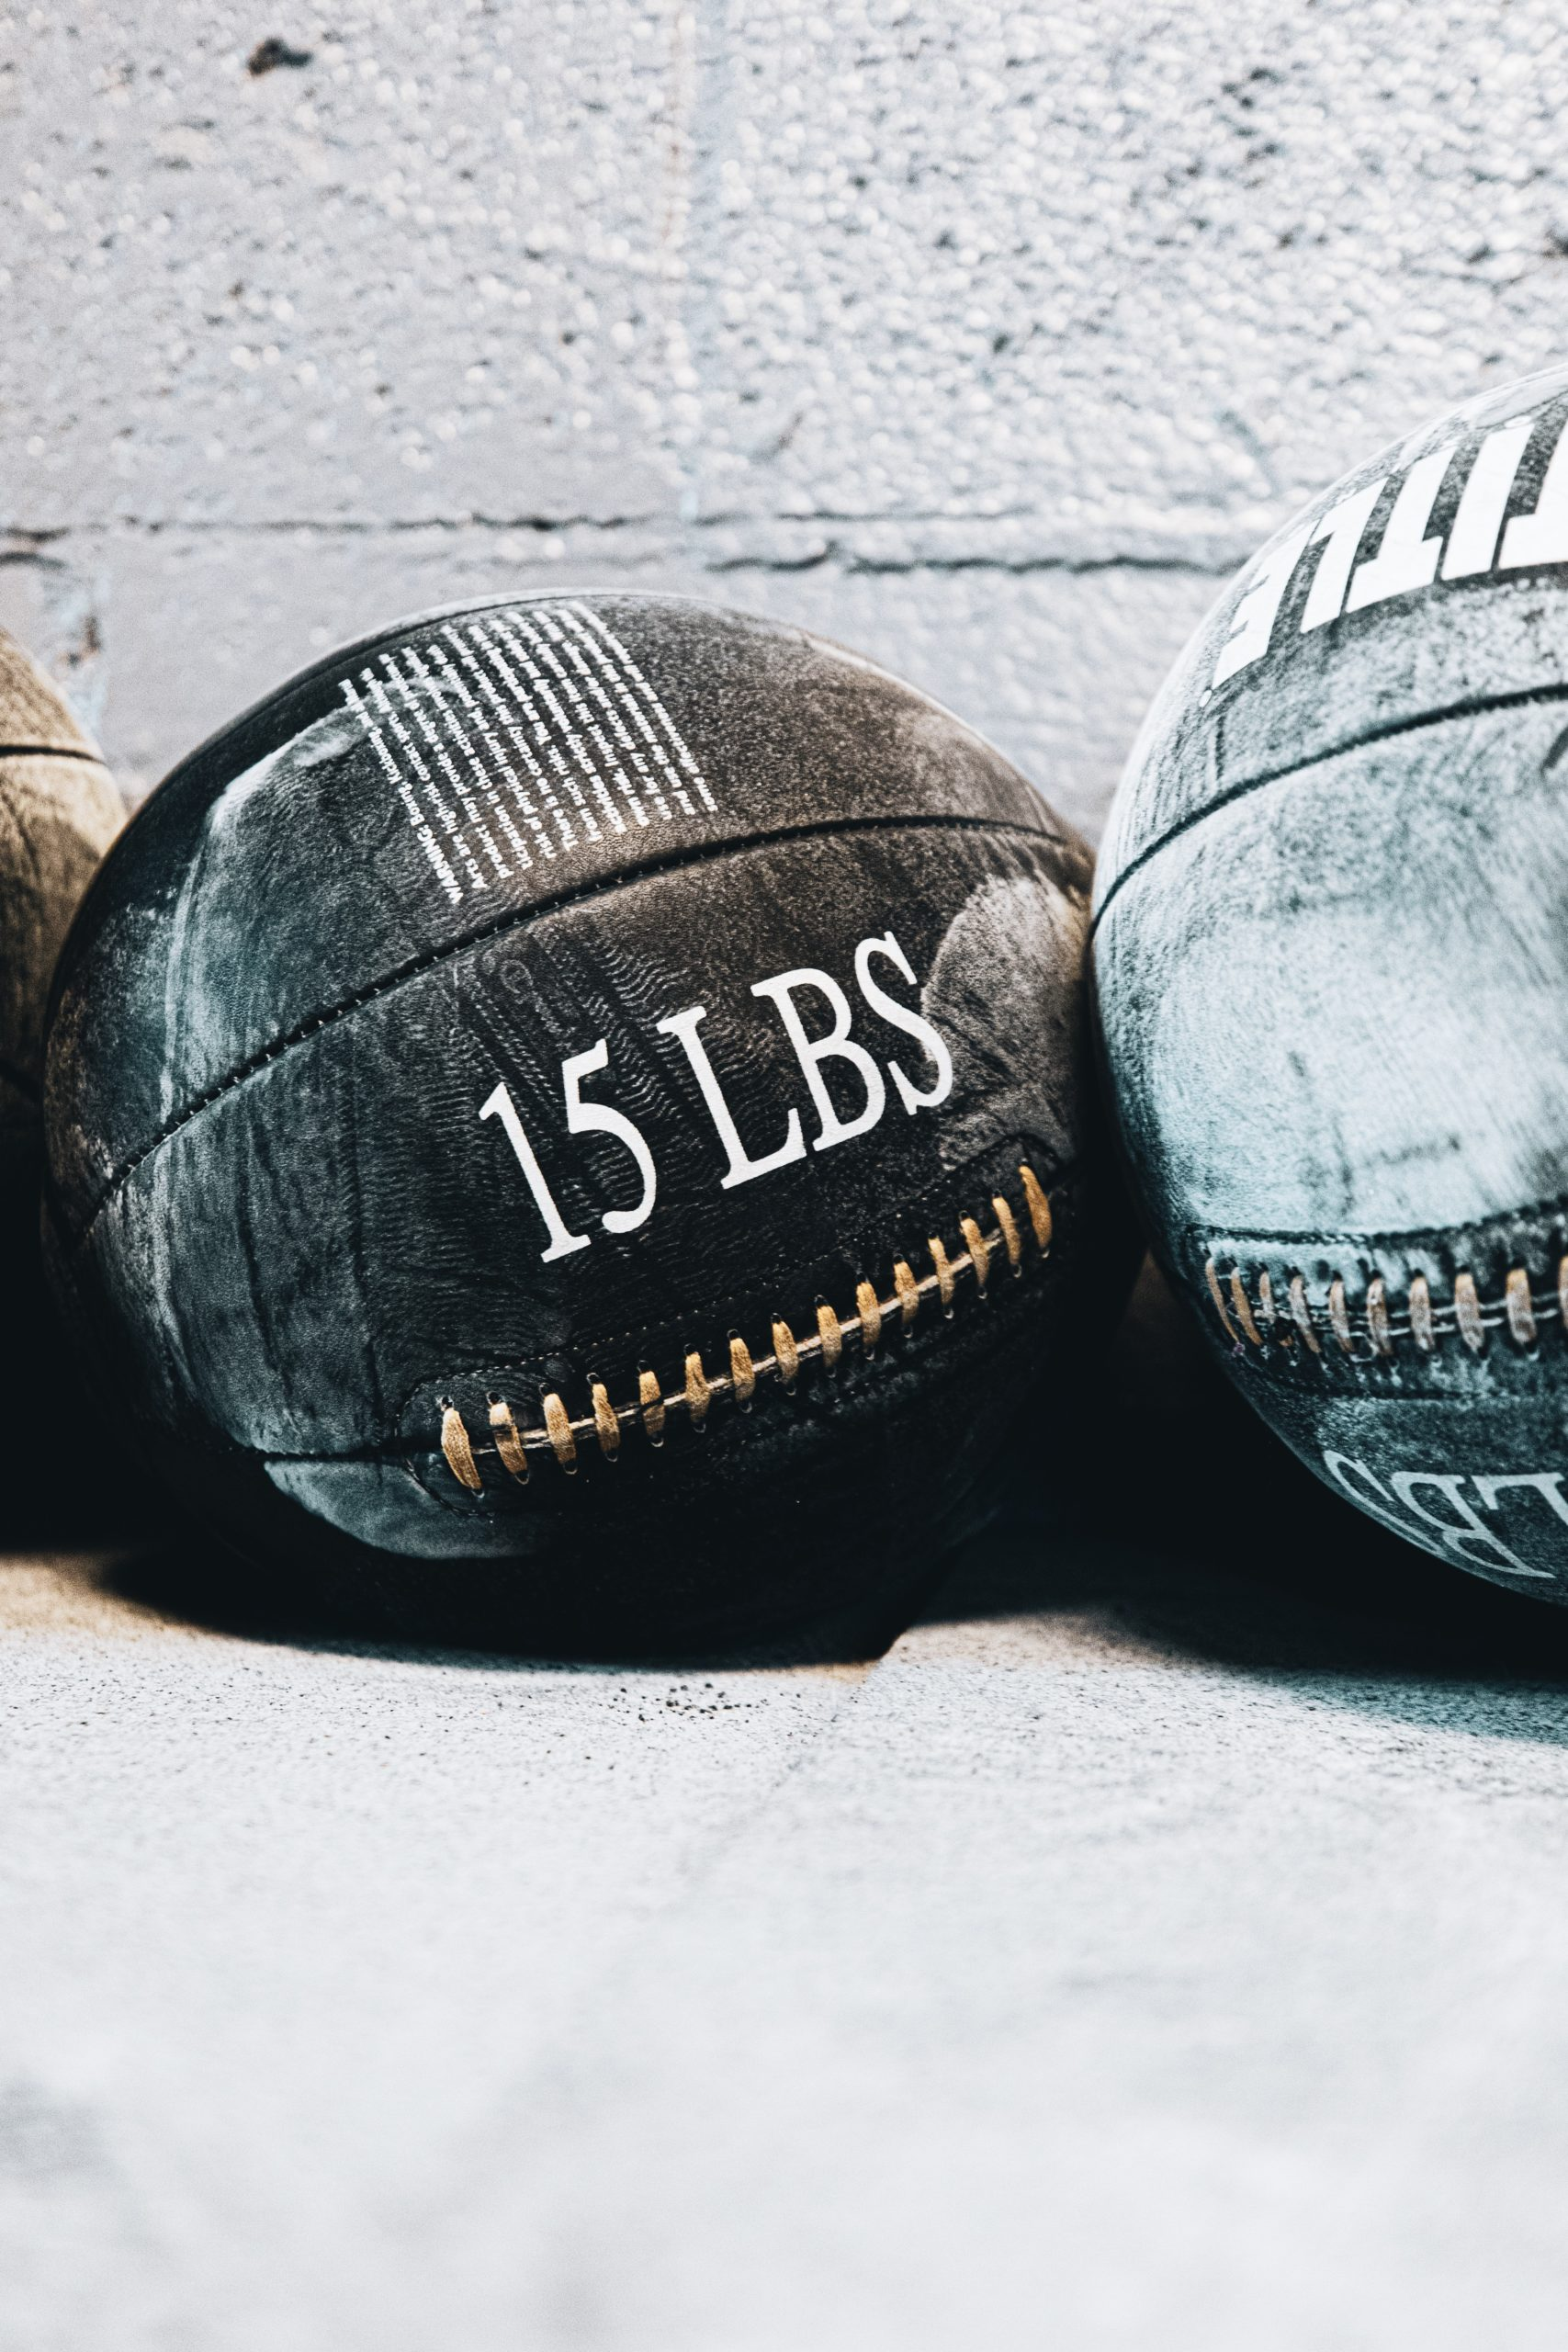 weights / image from usnplash